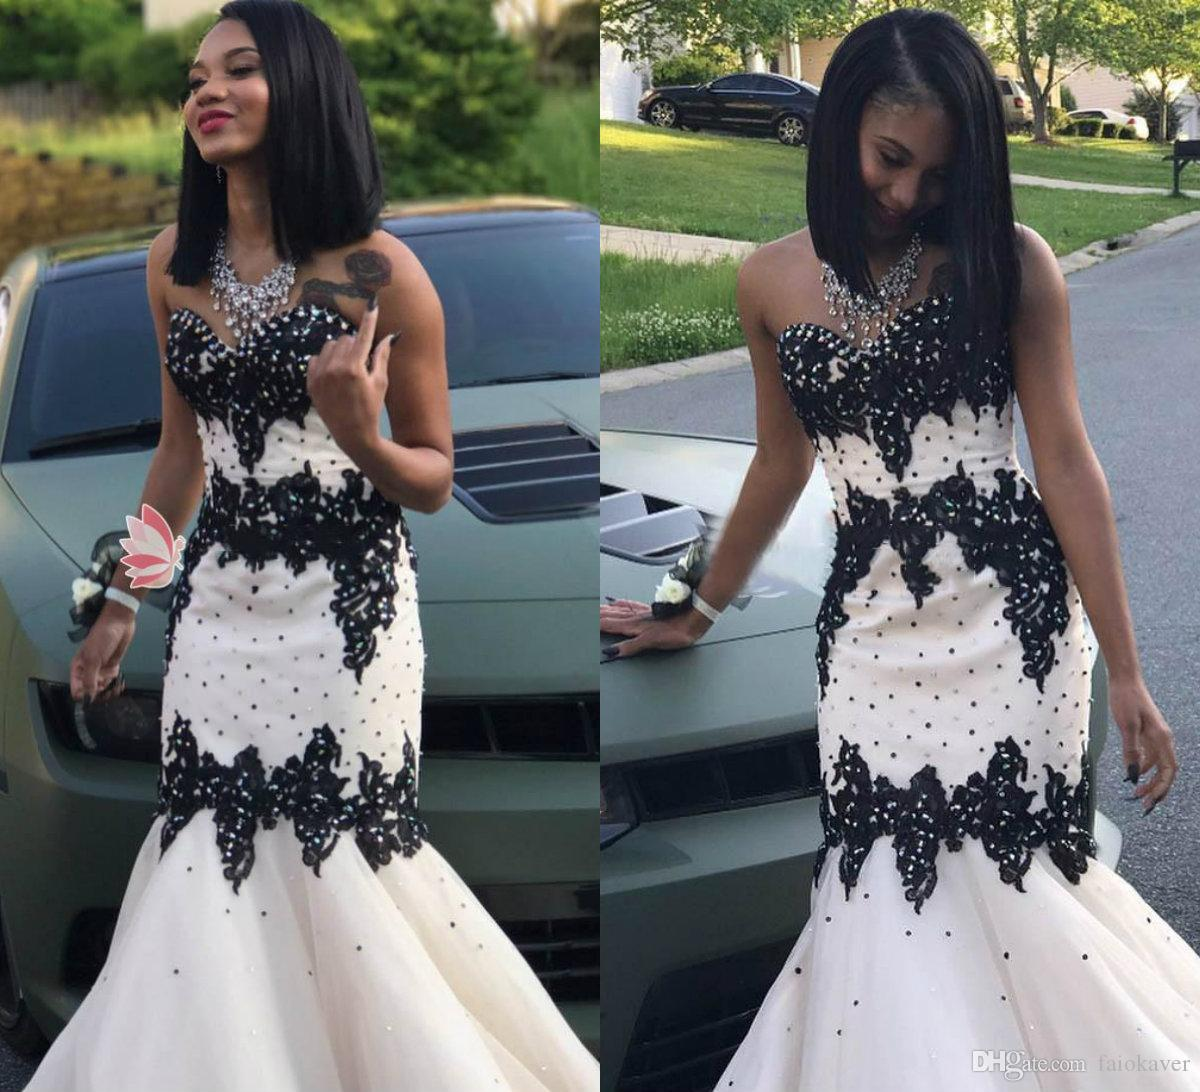 2019 White Prom Dresses Sweetheart Lace Appliqued Bead Satin Black Girl  Evening Dress Girls Graduation Homecoming Wear 2019 Cocktail Dress